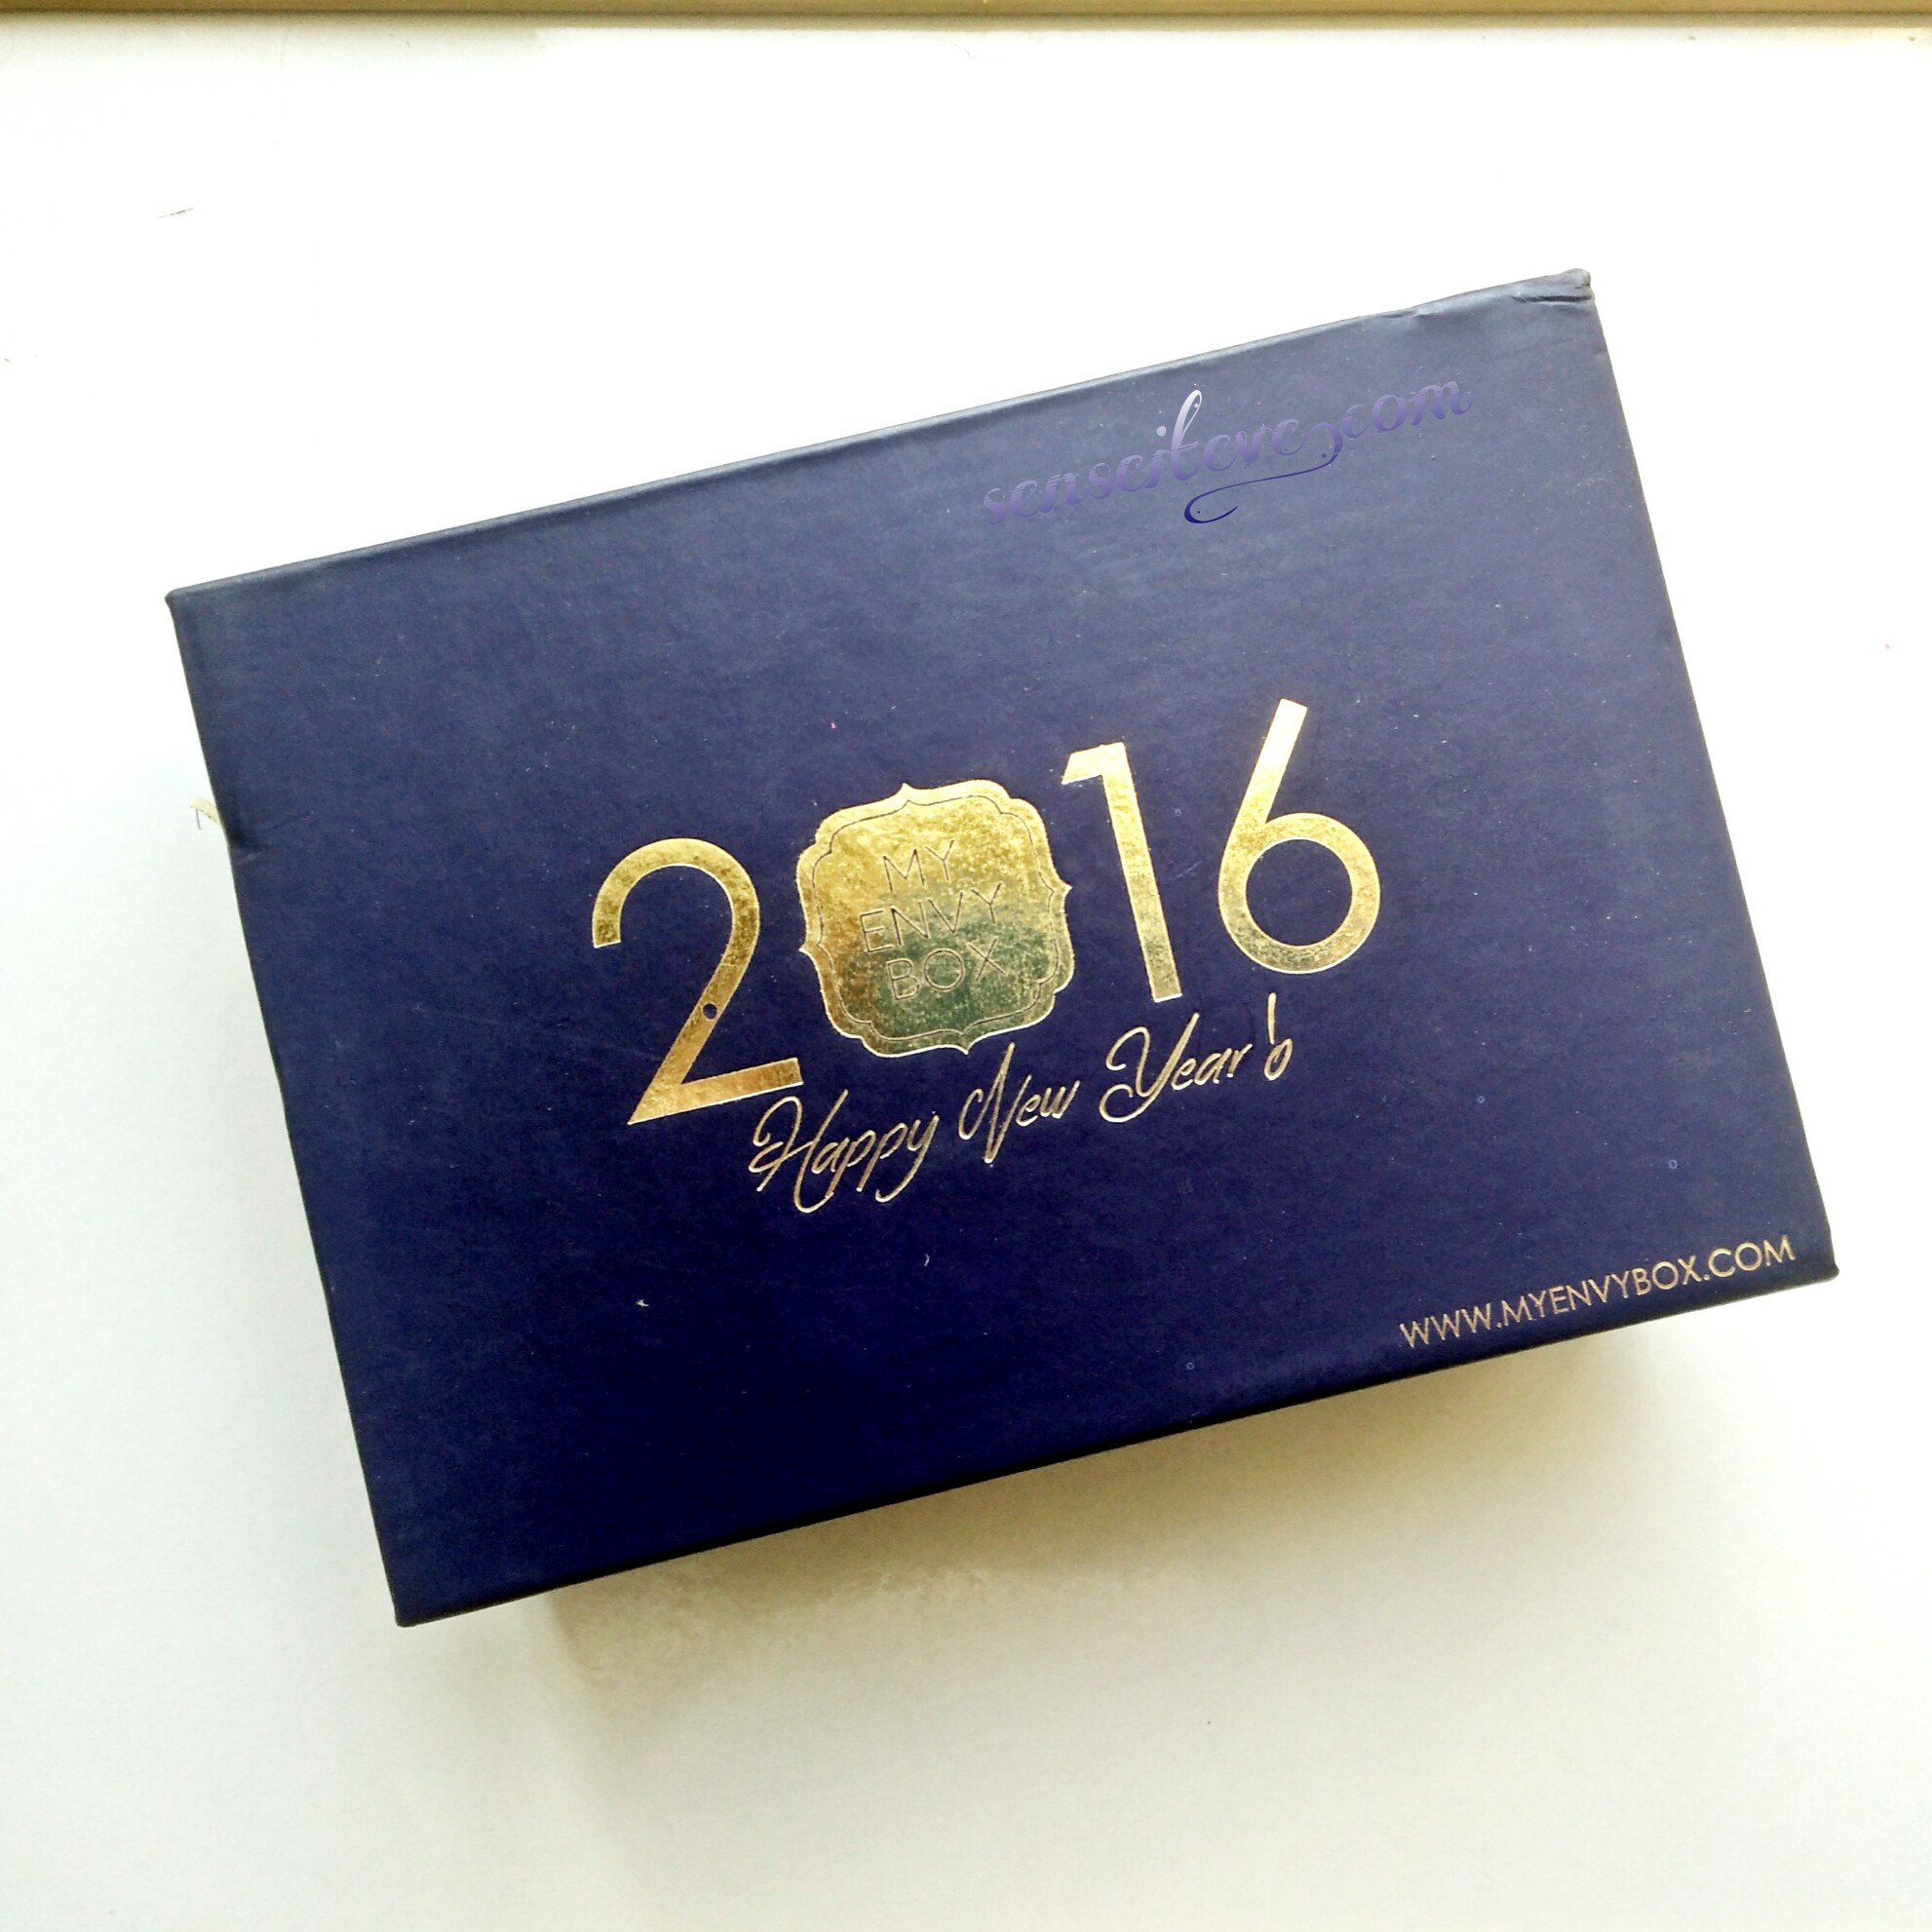 My Envy Box Jan 2016